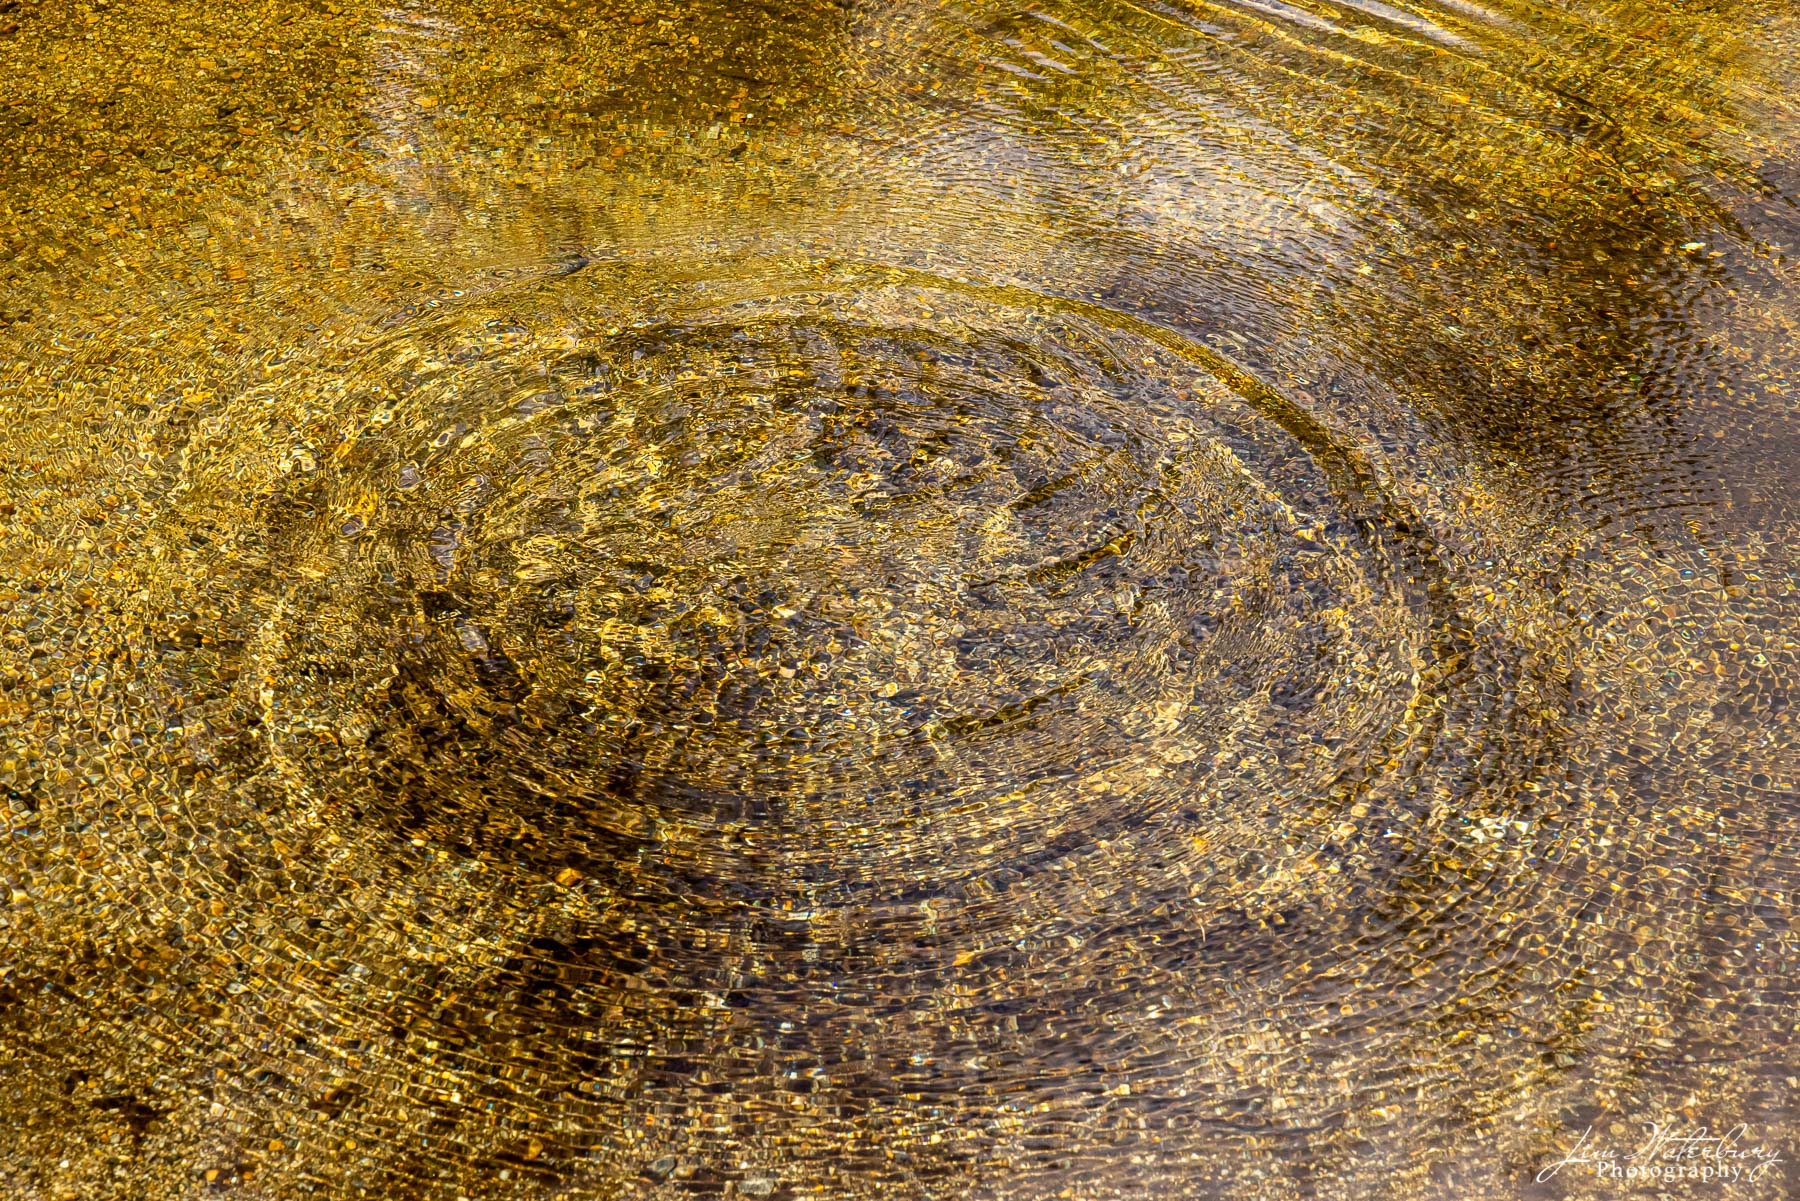 Ripples on the surface of the water cause a circle that outlines the golden-colored collection of rocks on the river bottom.